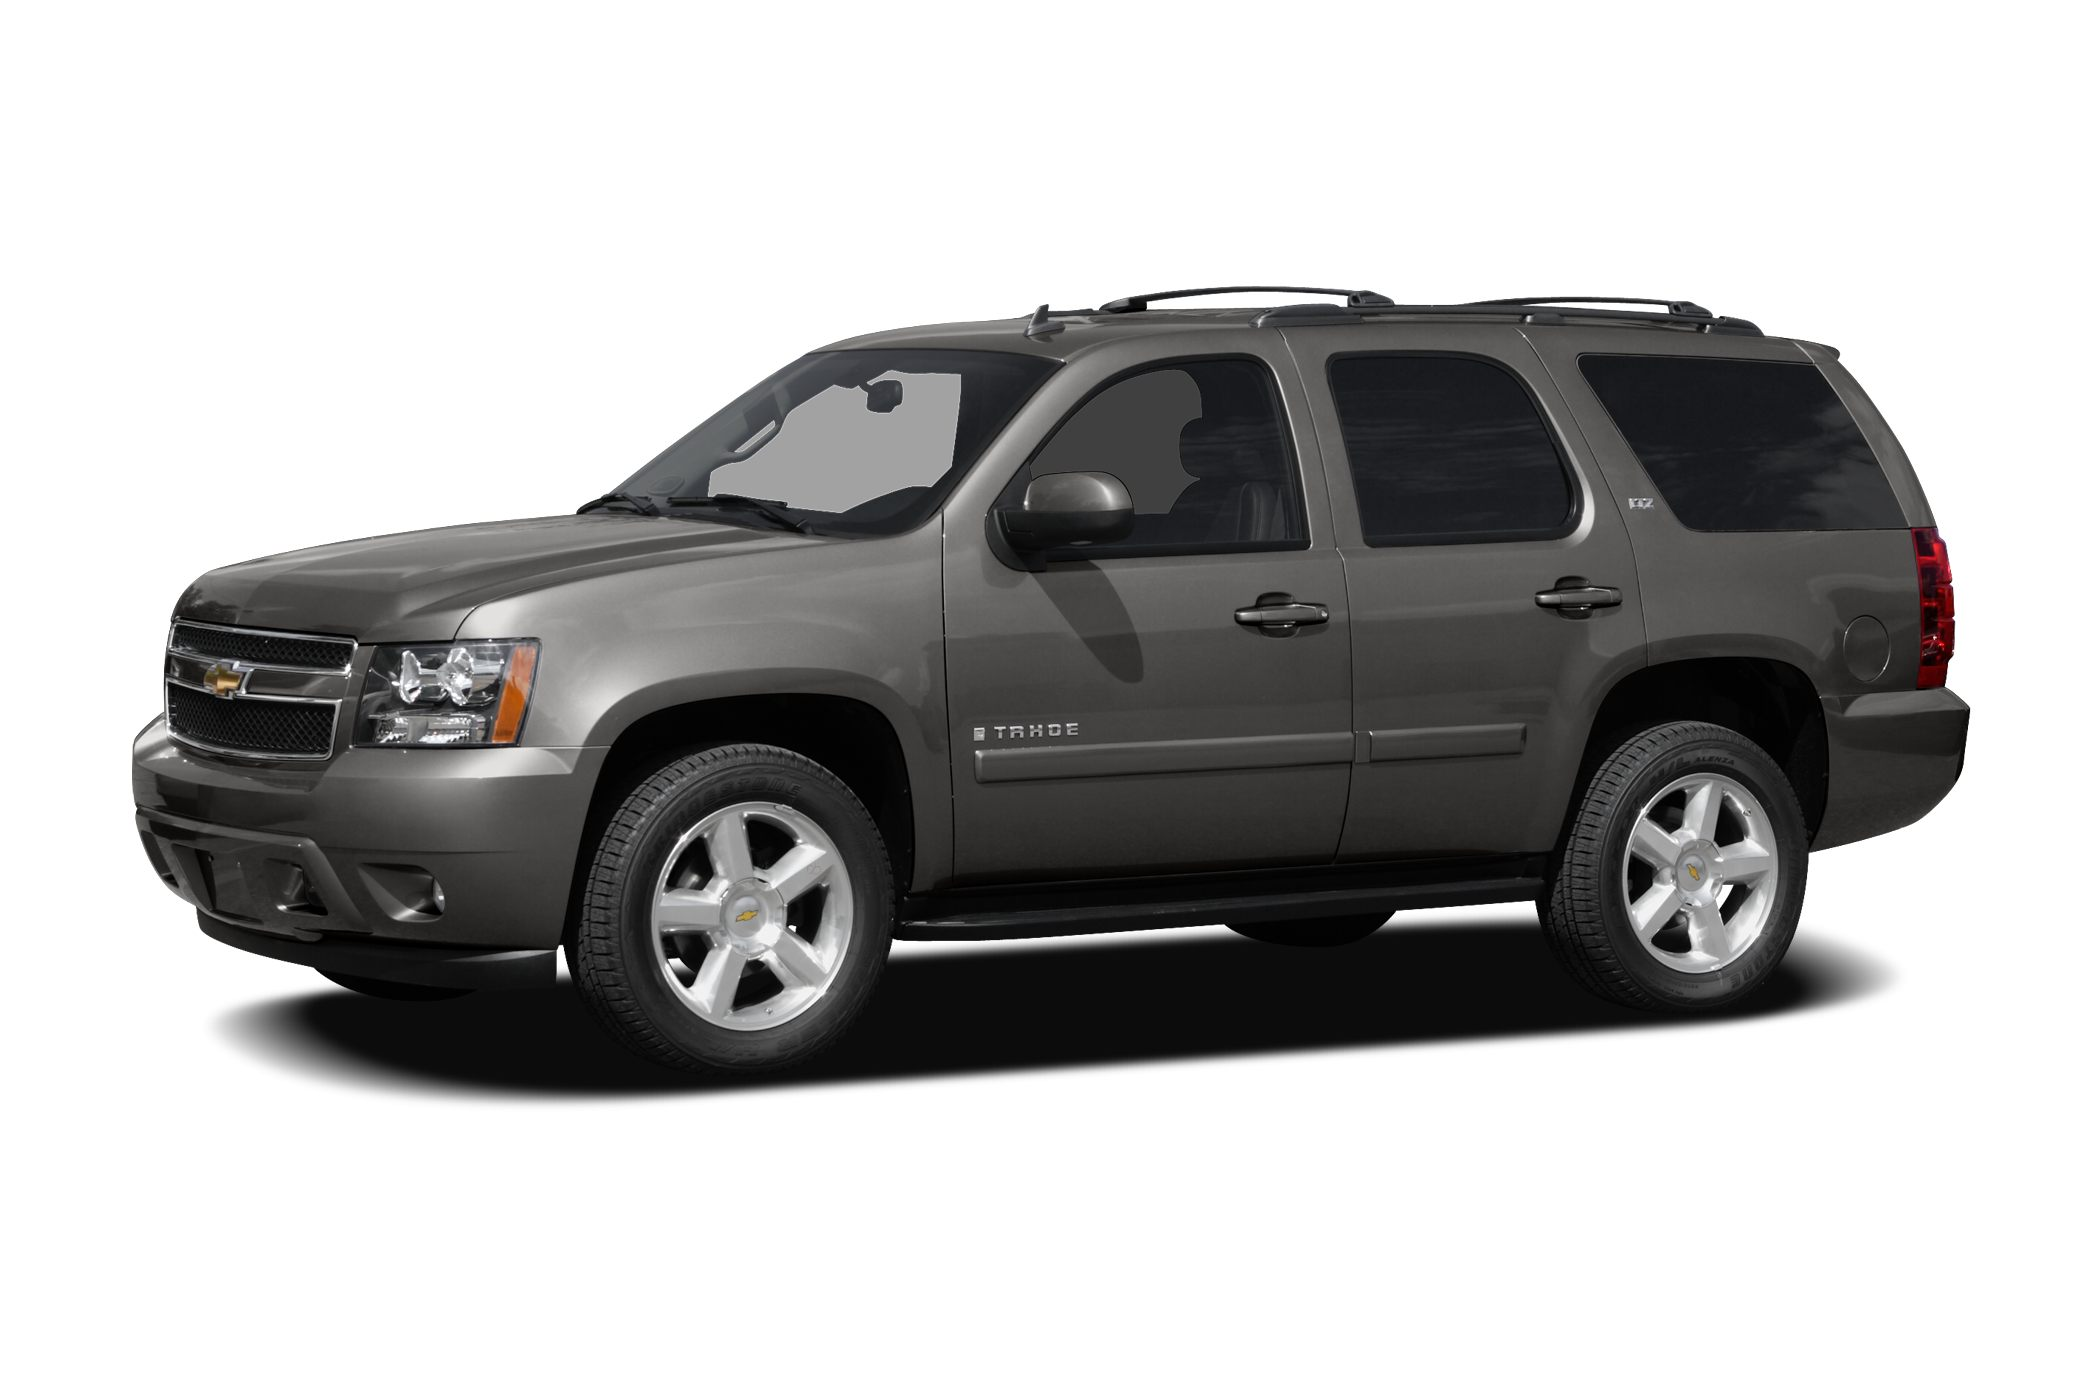 2007 Chevrolet Tahoe LS Excellent Condition LS trim Edmunds Consumers Most Wanted SUV Under 45